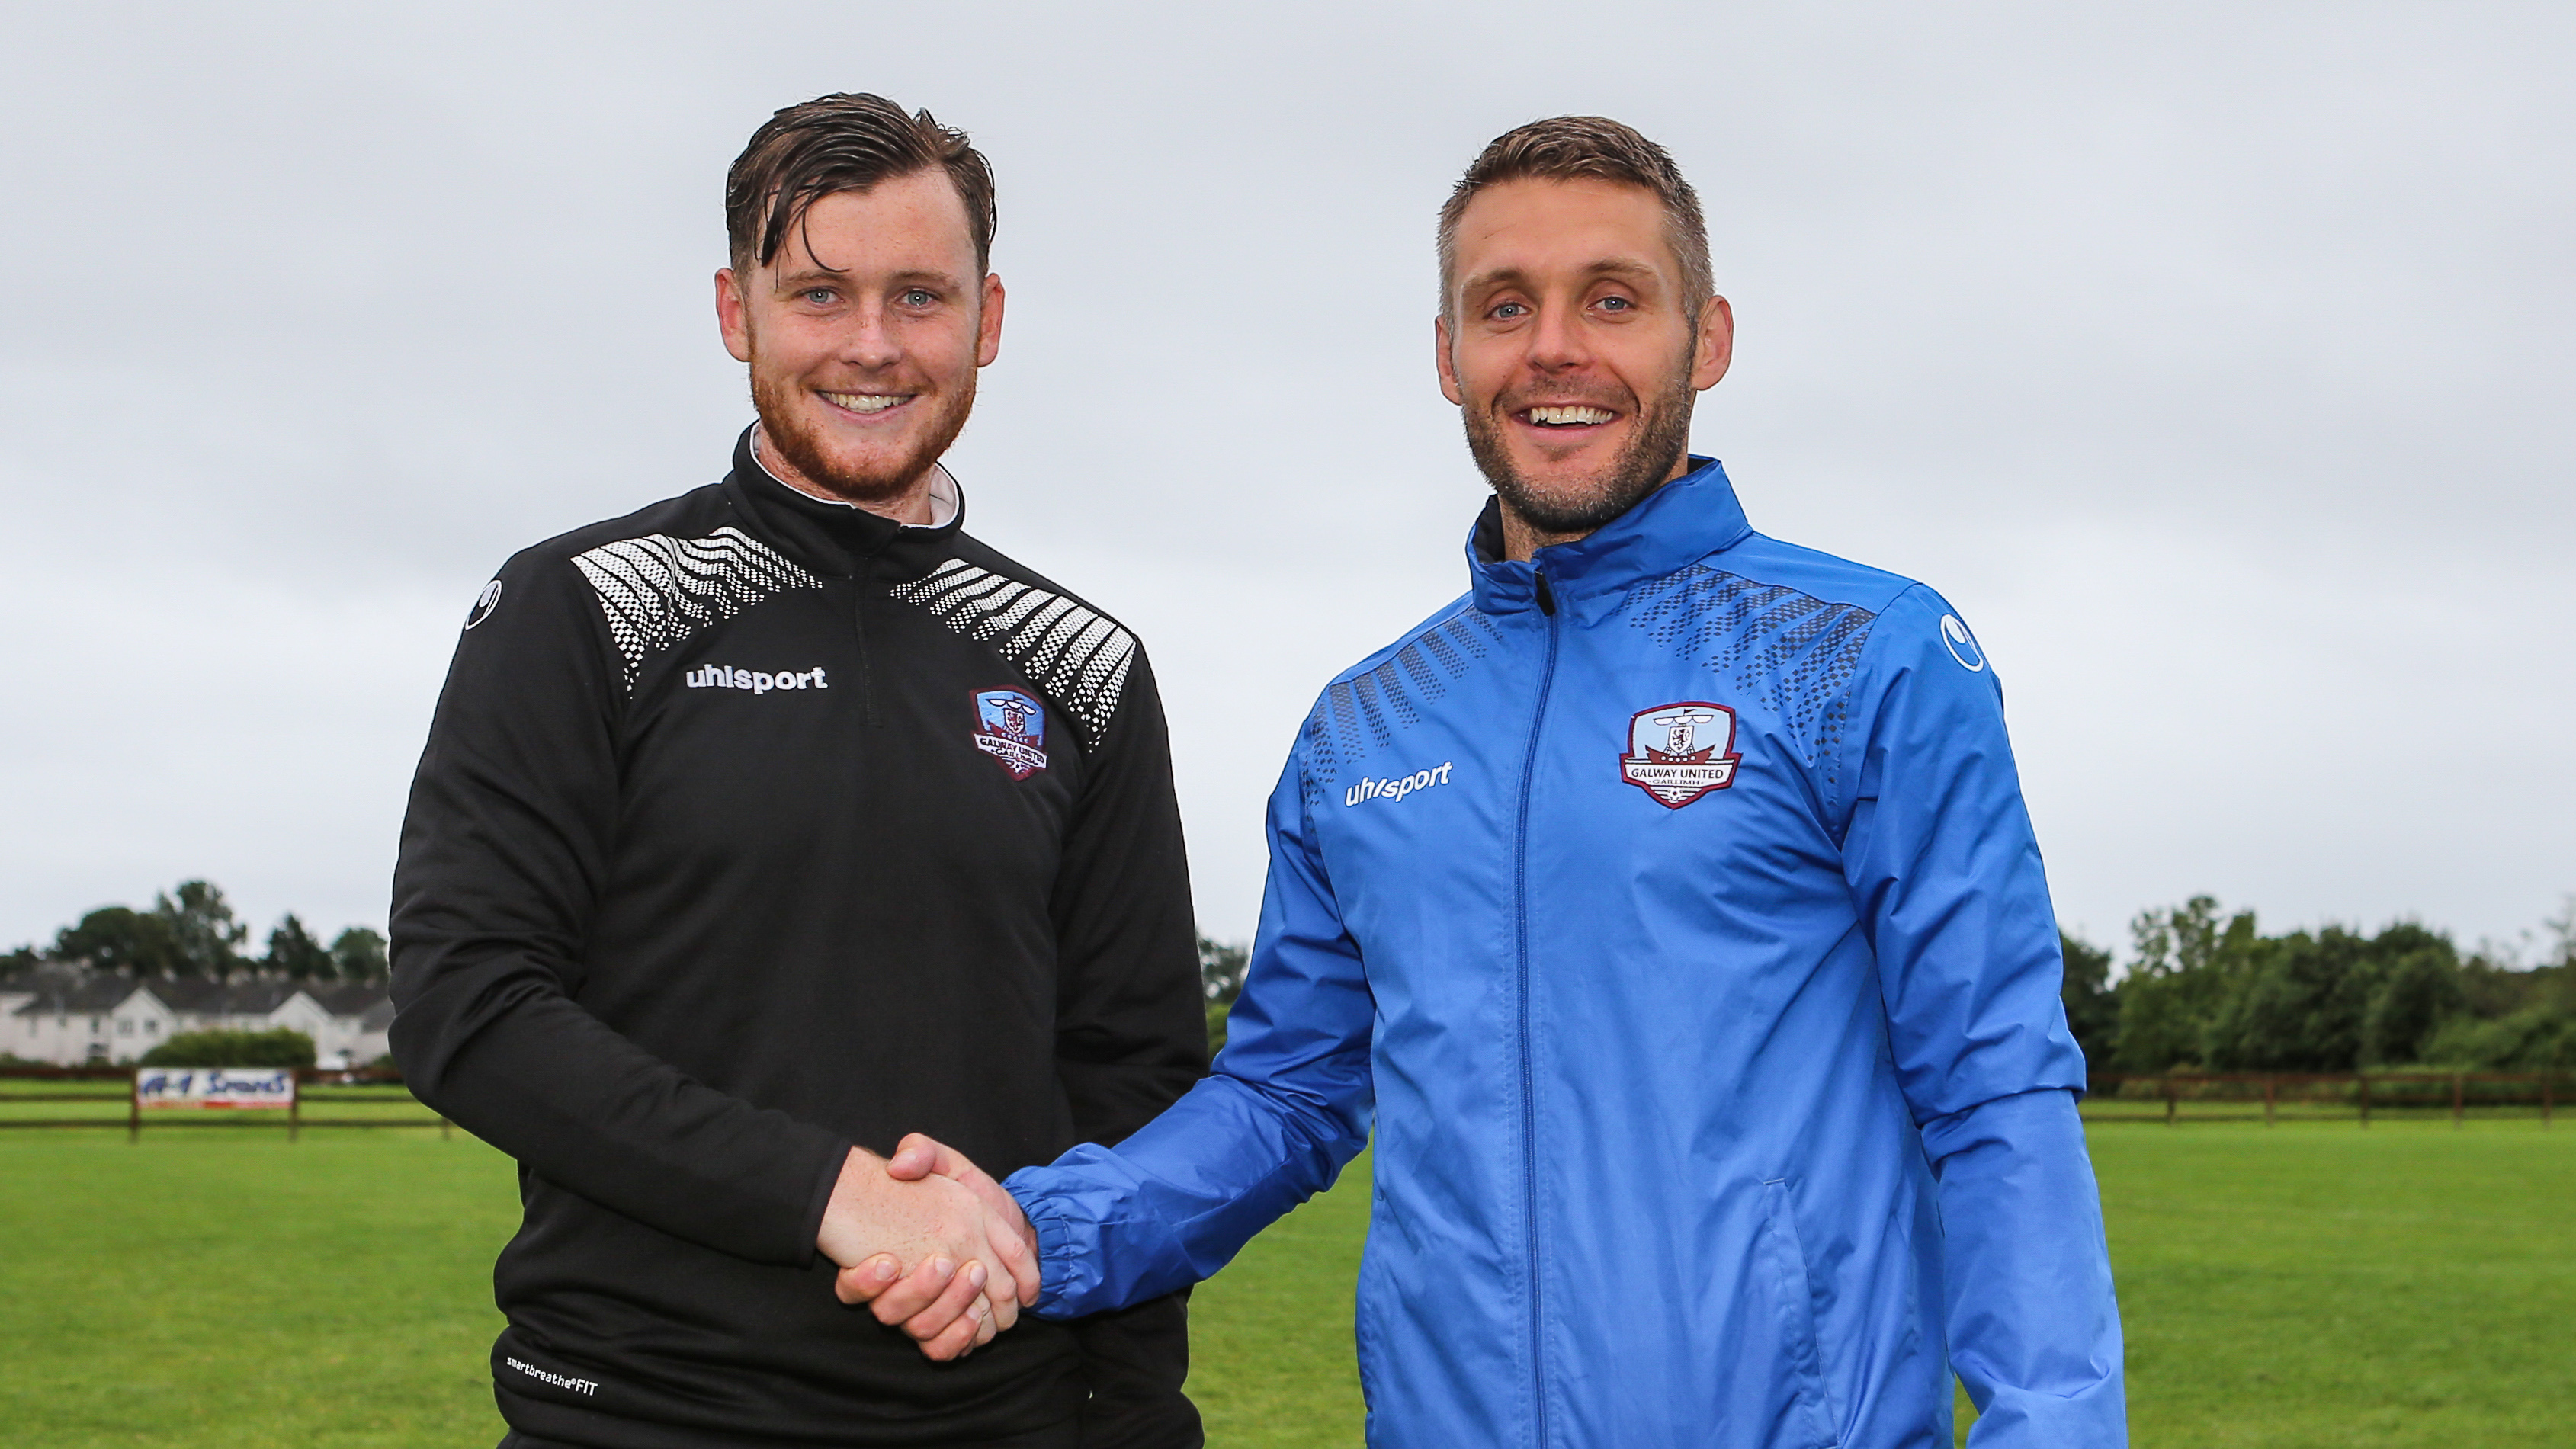 Anastasia Devine Wiki midwest radio - sean russell signs for galway united